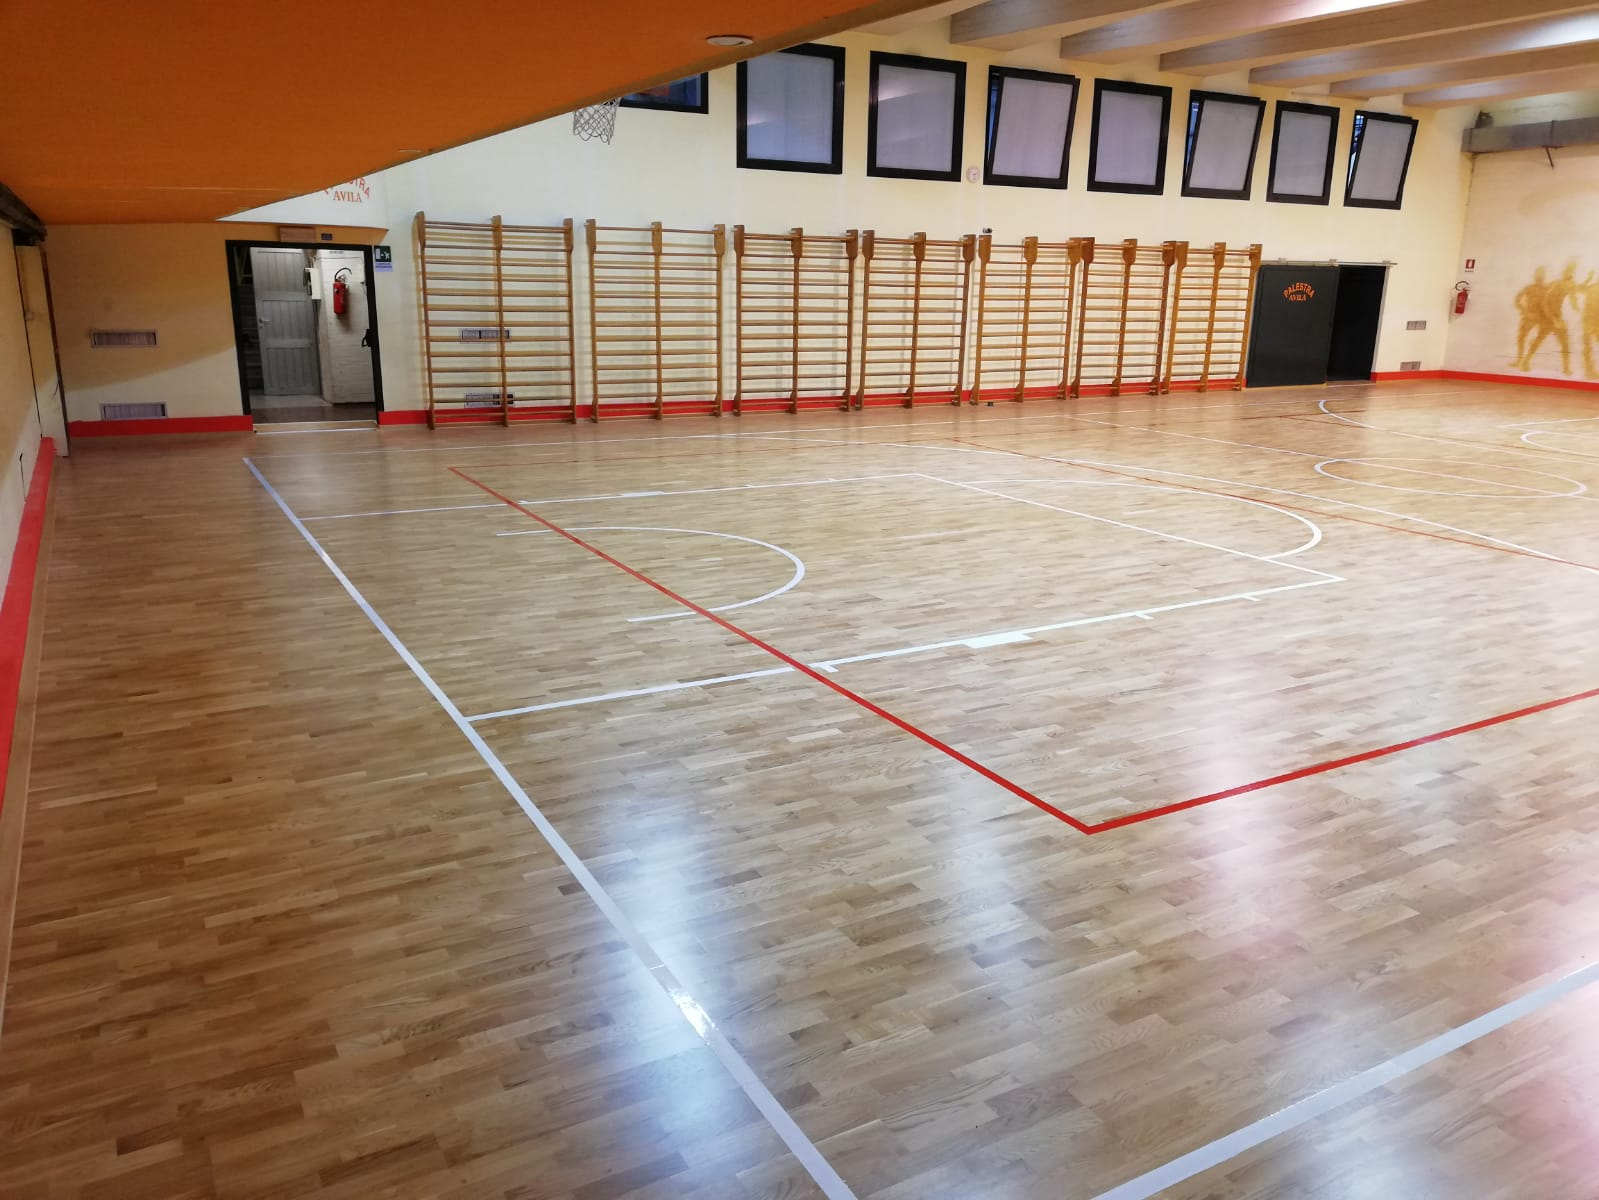 The new Playwood S.14 certified FIBA parquet